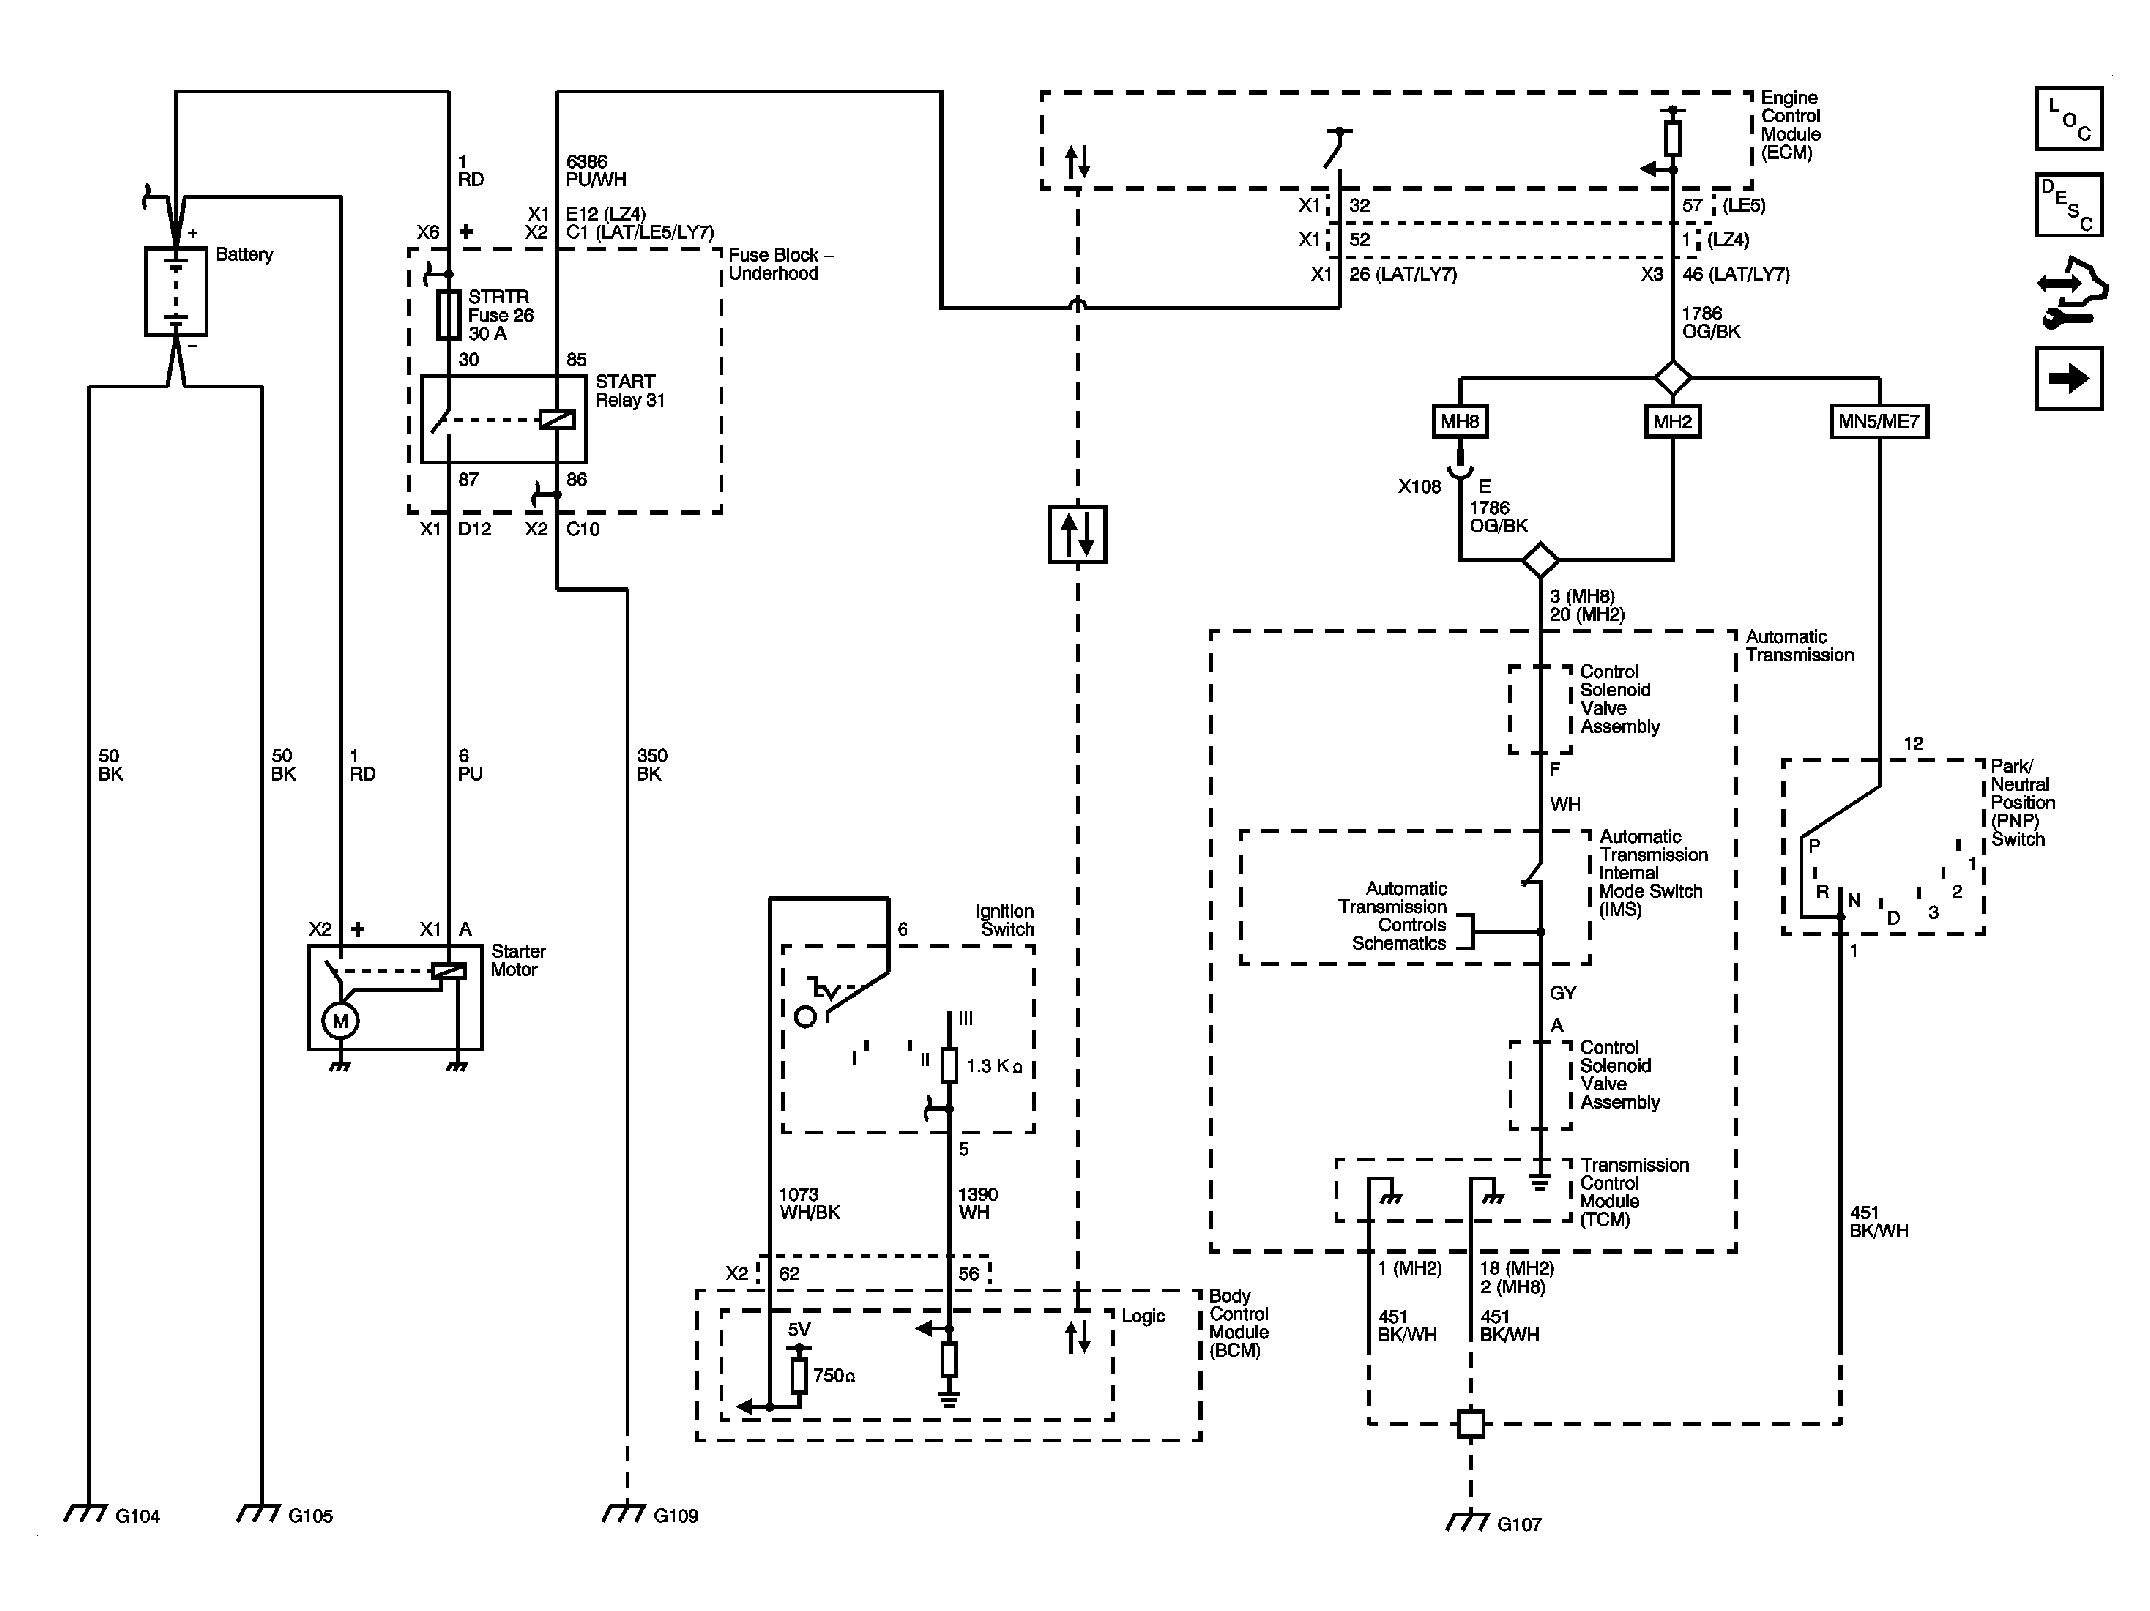 Wiring Diagram For Ignition Switch On 2006 Chevy Malibu 2